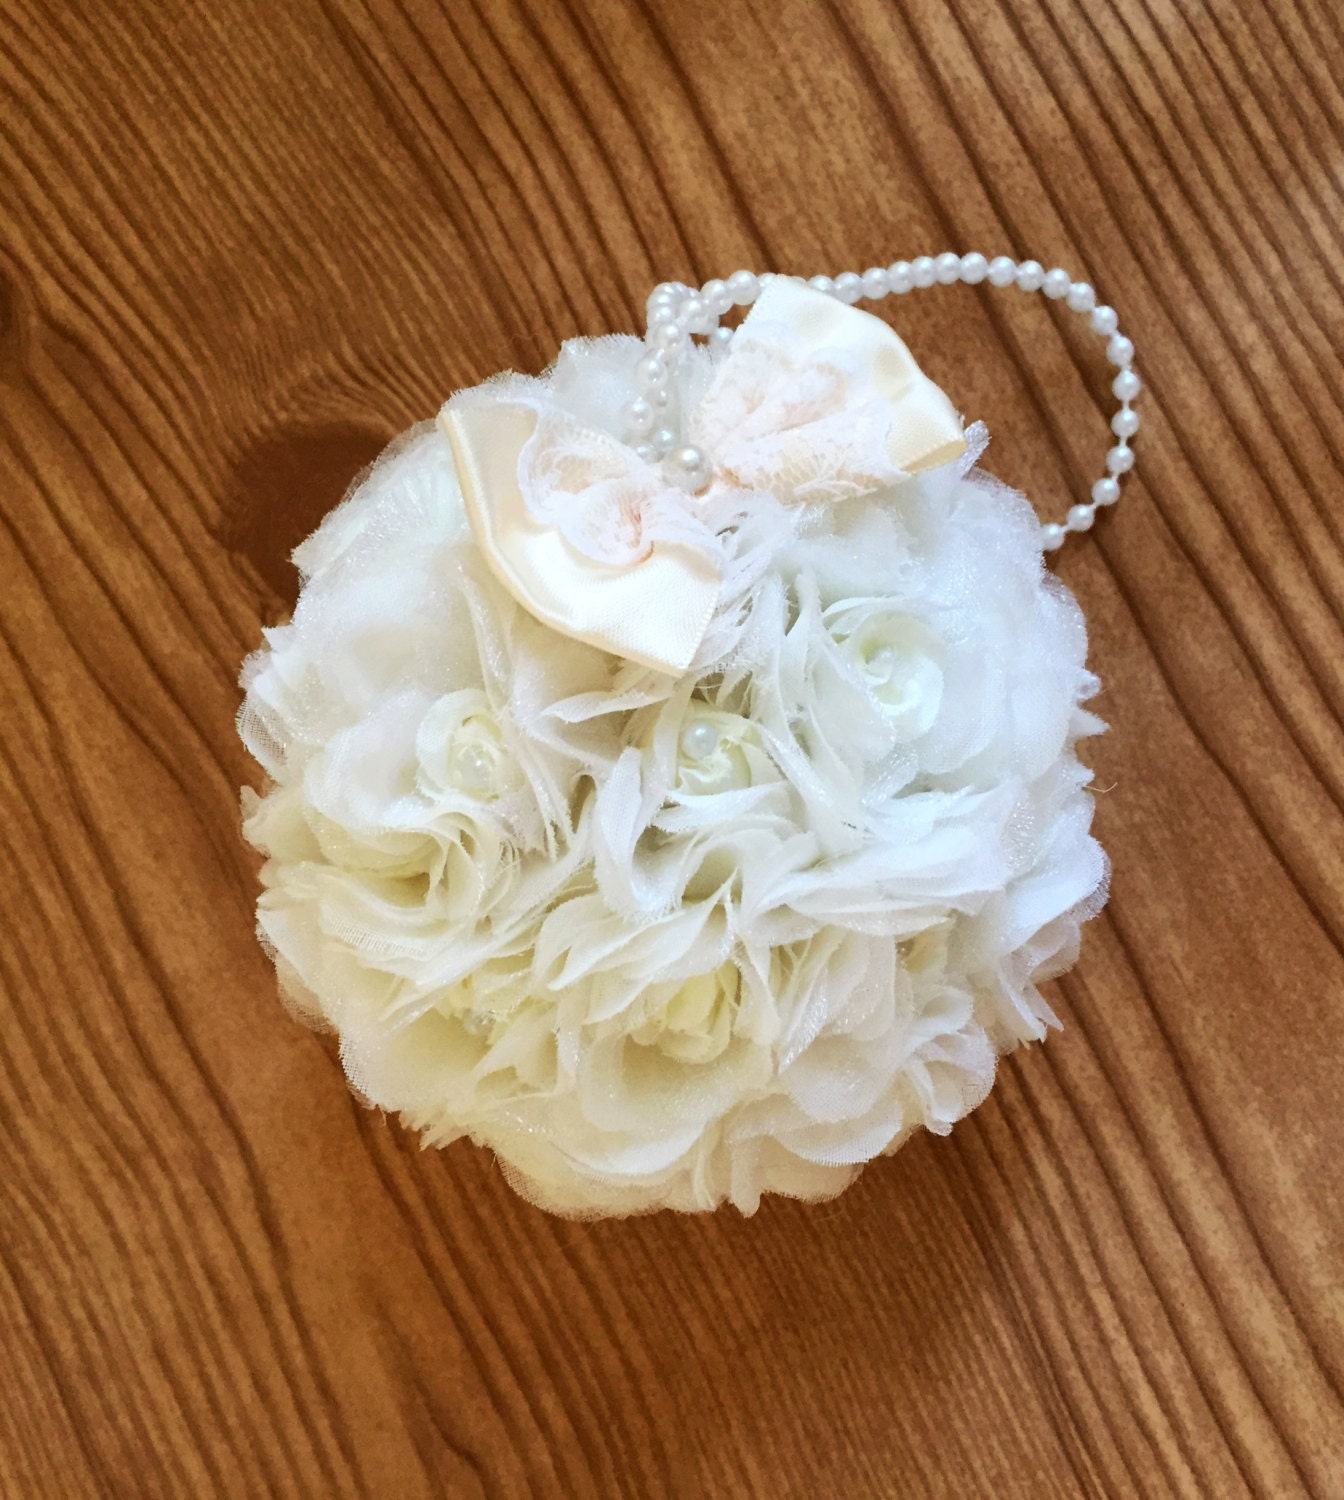 Flower ball ivory rose kissing ball 5 pomander zoom mightylinksfo Choice Image